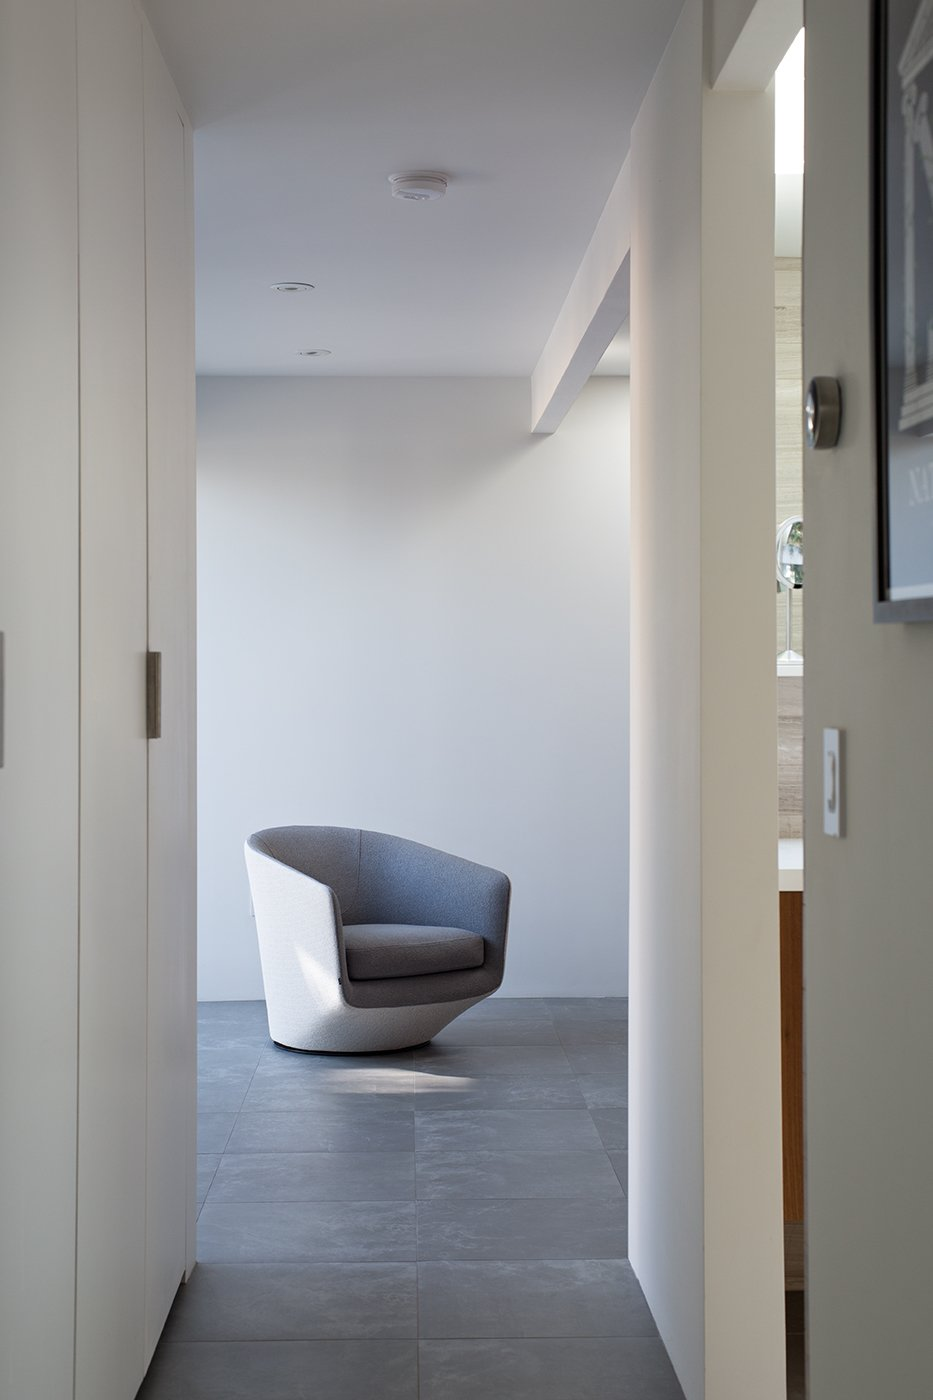 The floors are covered in two-foot square Nextra Piombo tiles by Monocibec. A U-Turn chair designed by Niels Bendtsen echoes the crisp, sculptural qualities of the interior spaces. 100+ Best Modern Seating Designs by Dwell